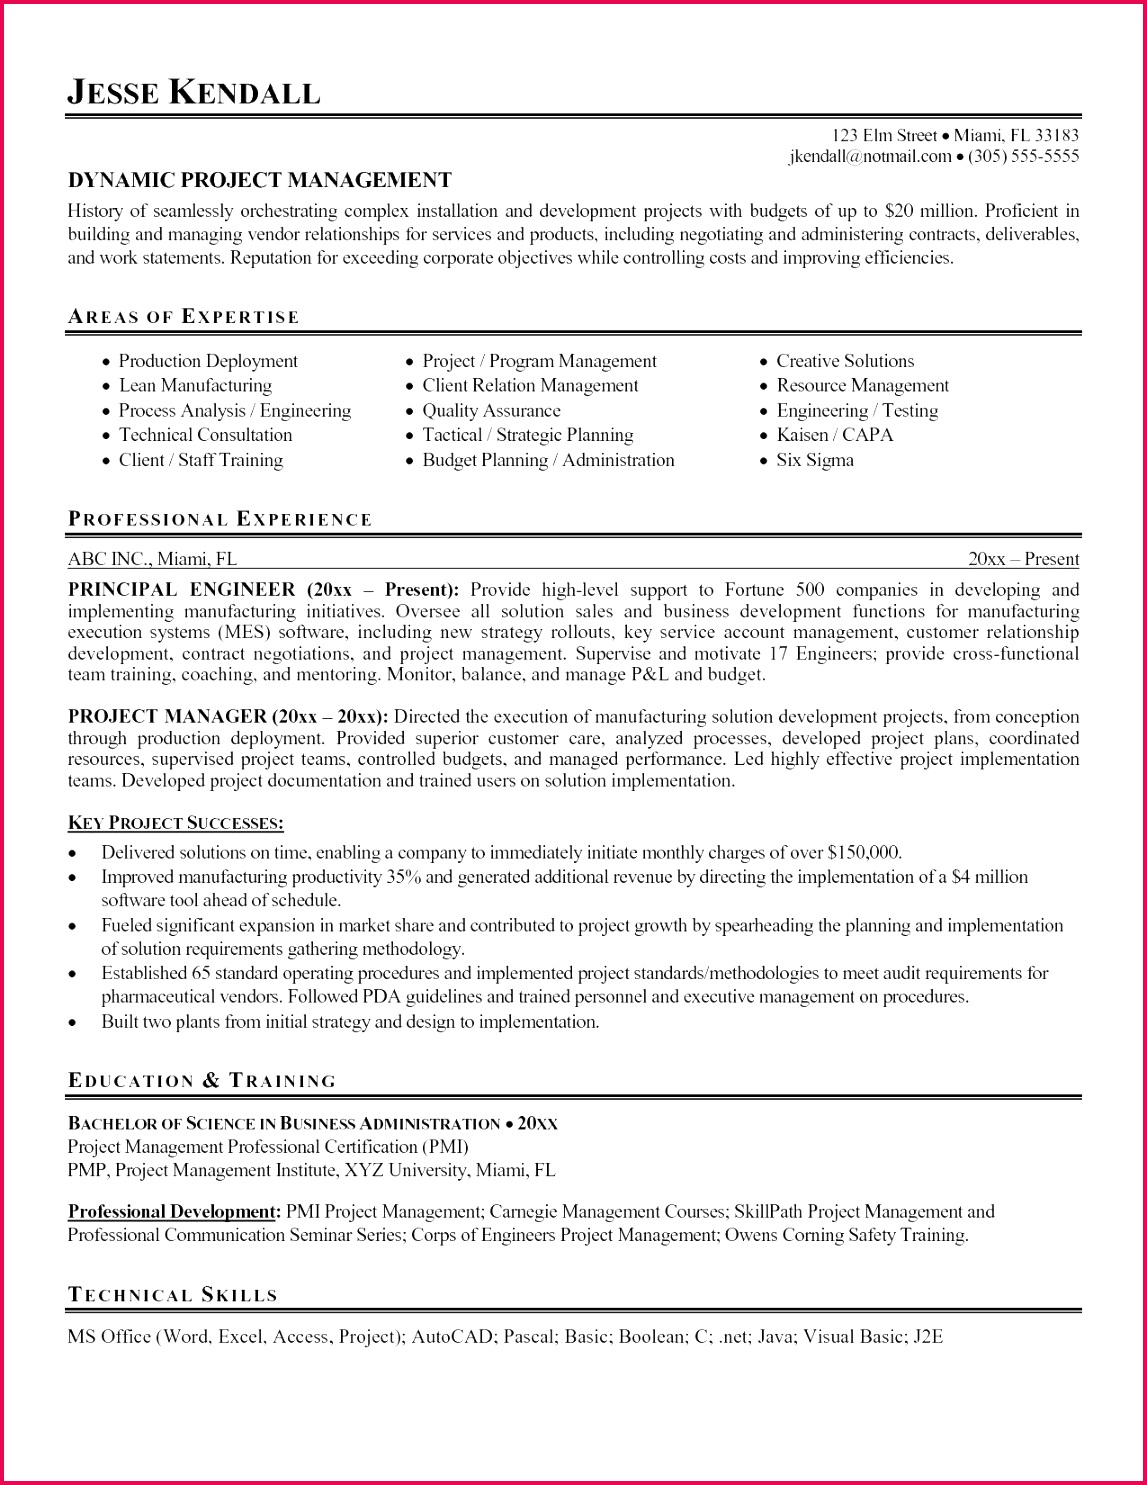 professional development plan template new construction management resume luxury cto resume 0d wallpapers 50 of professional development plan template